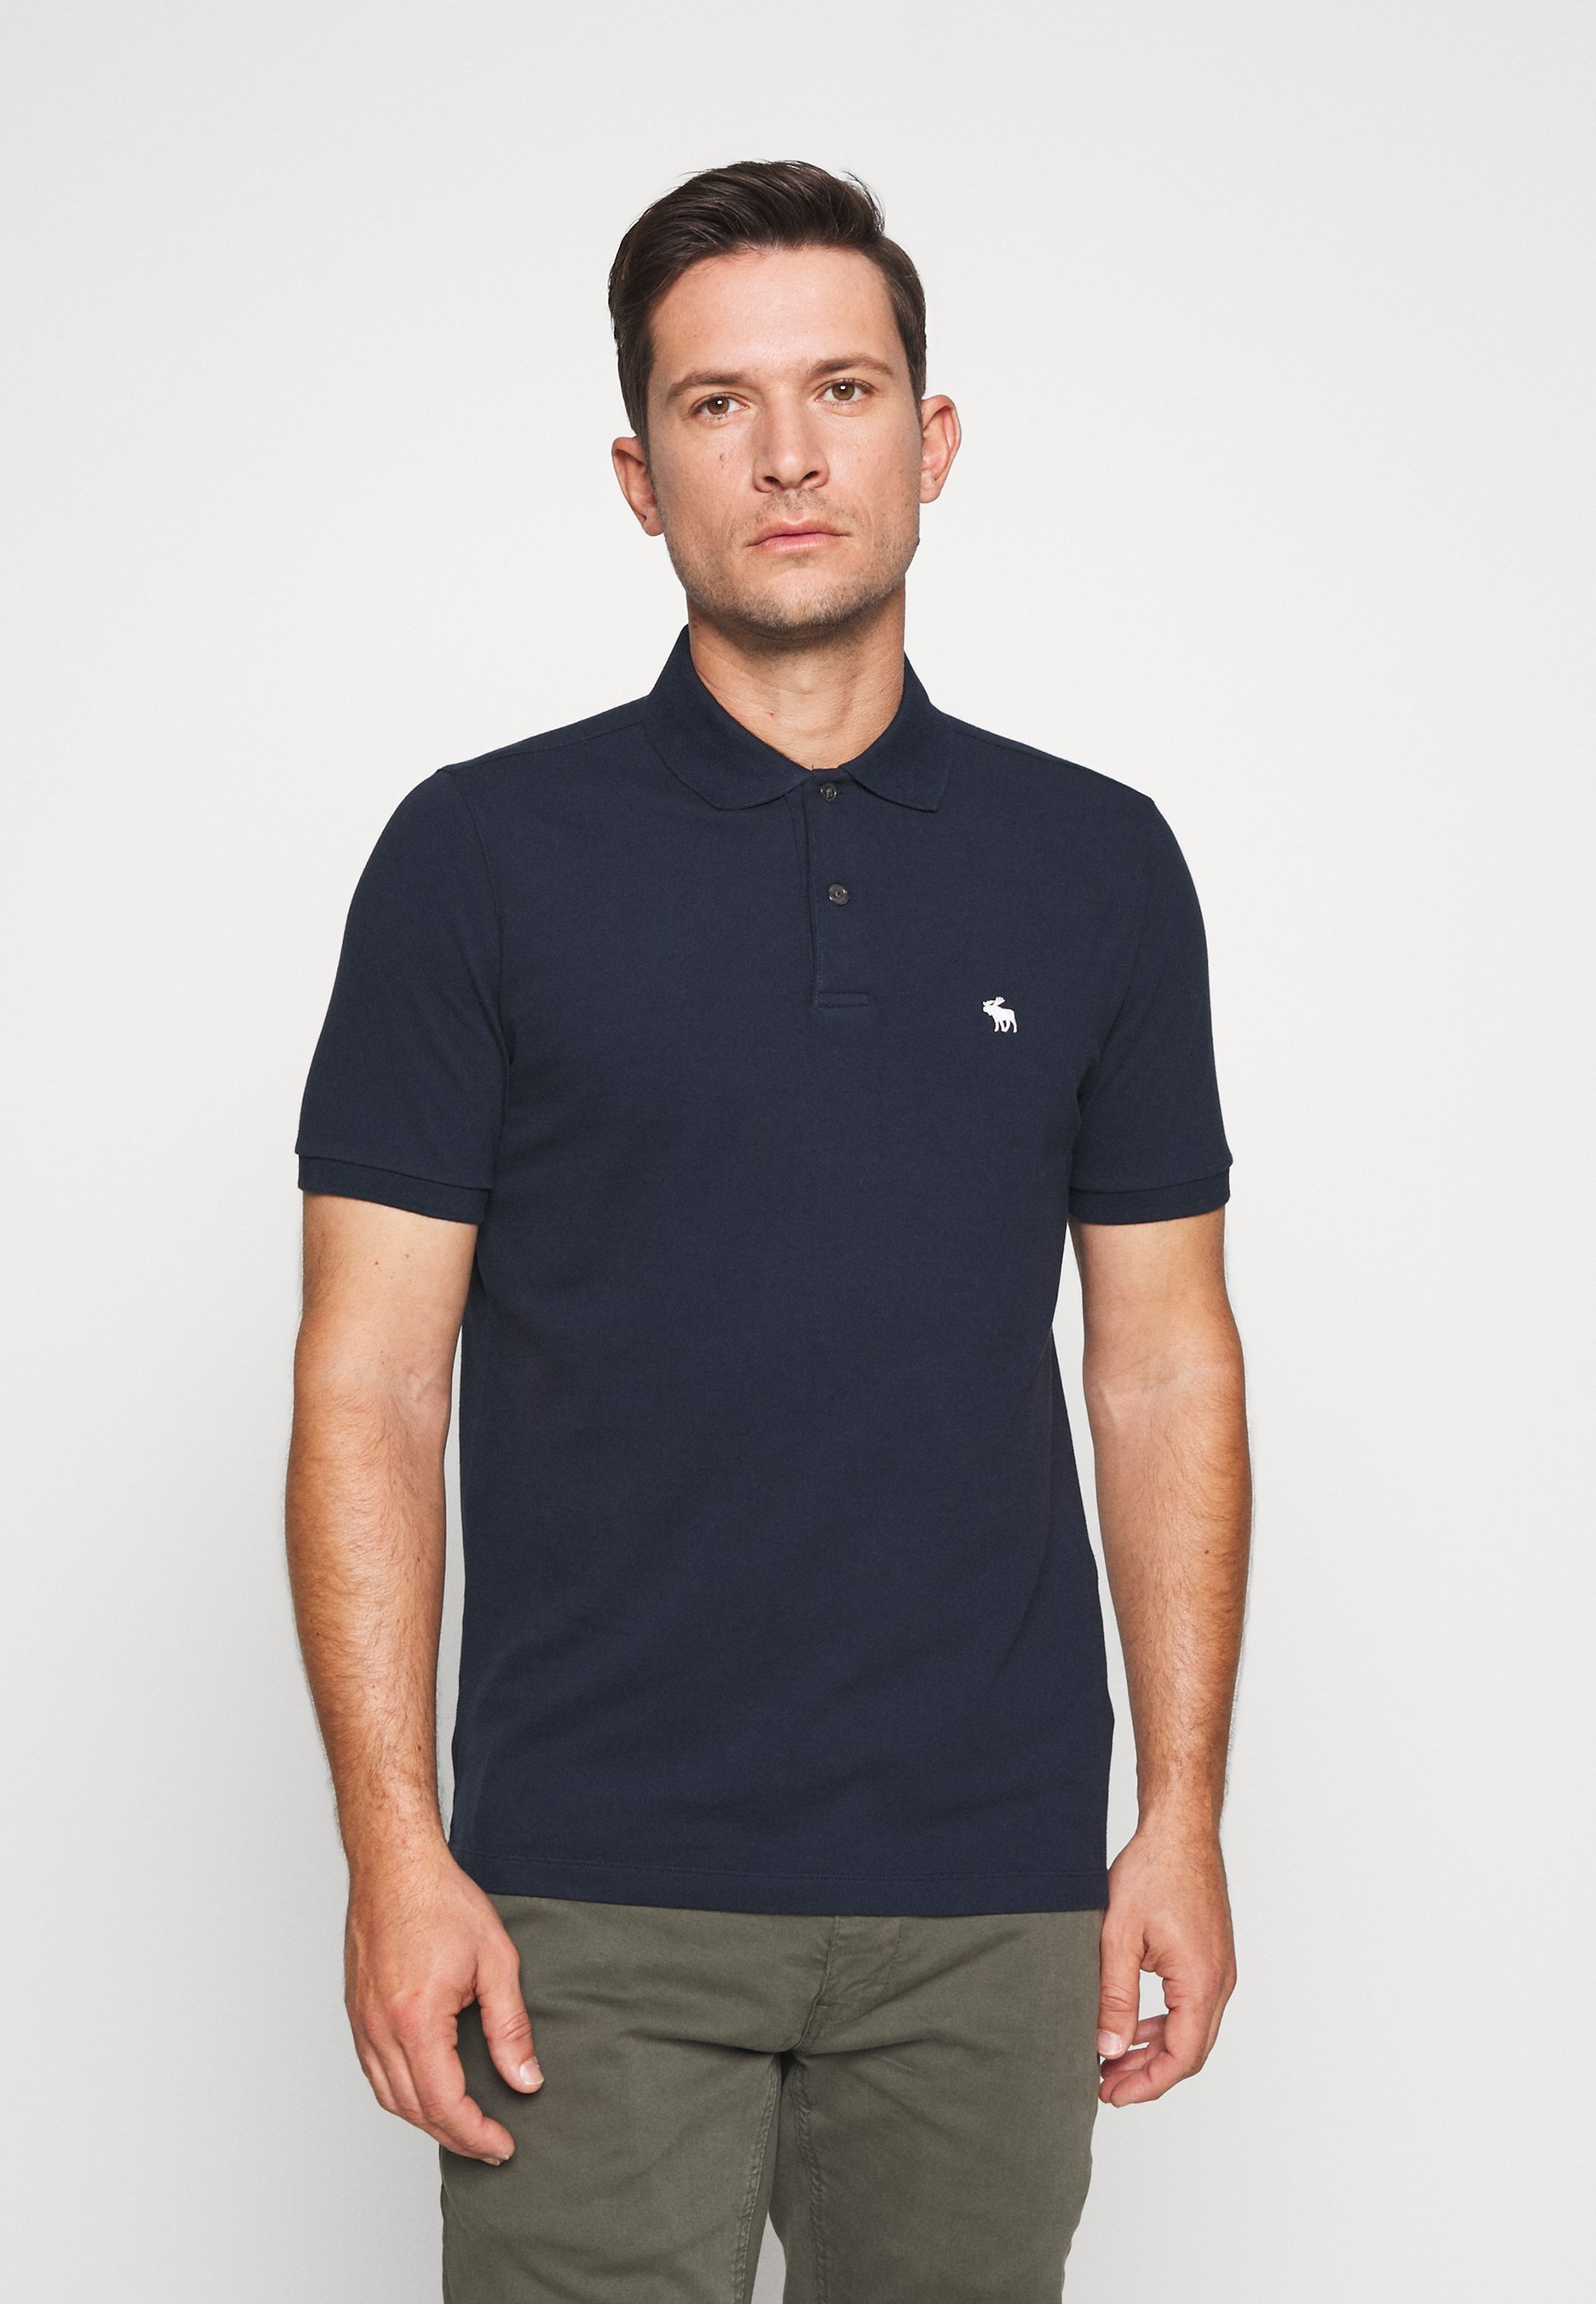 Abercrombie & Fitch MULTIPACK 3 PACK - Koszulka polo - navy/grey/white